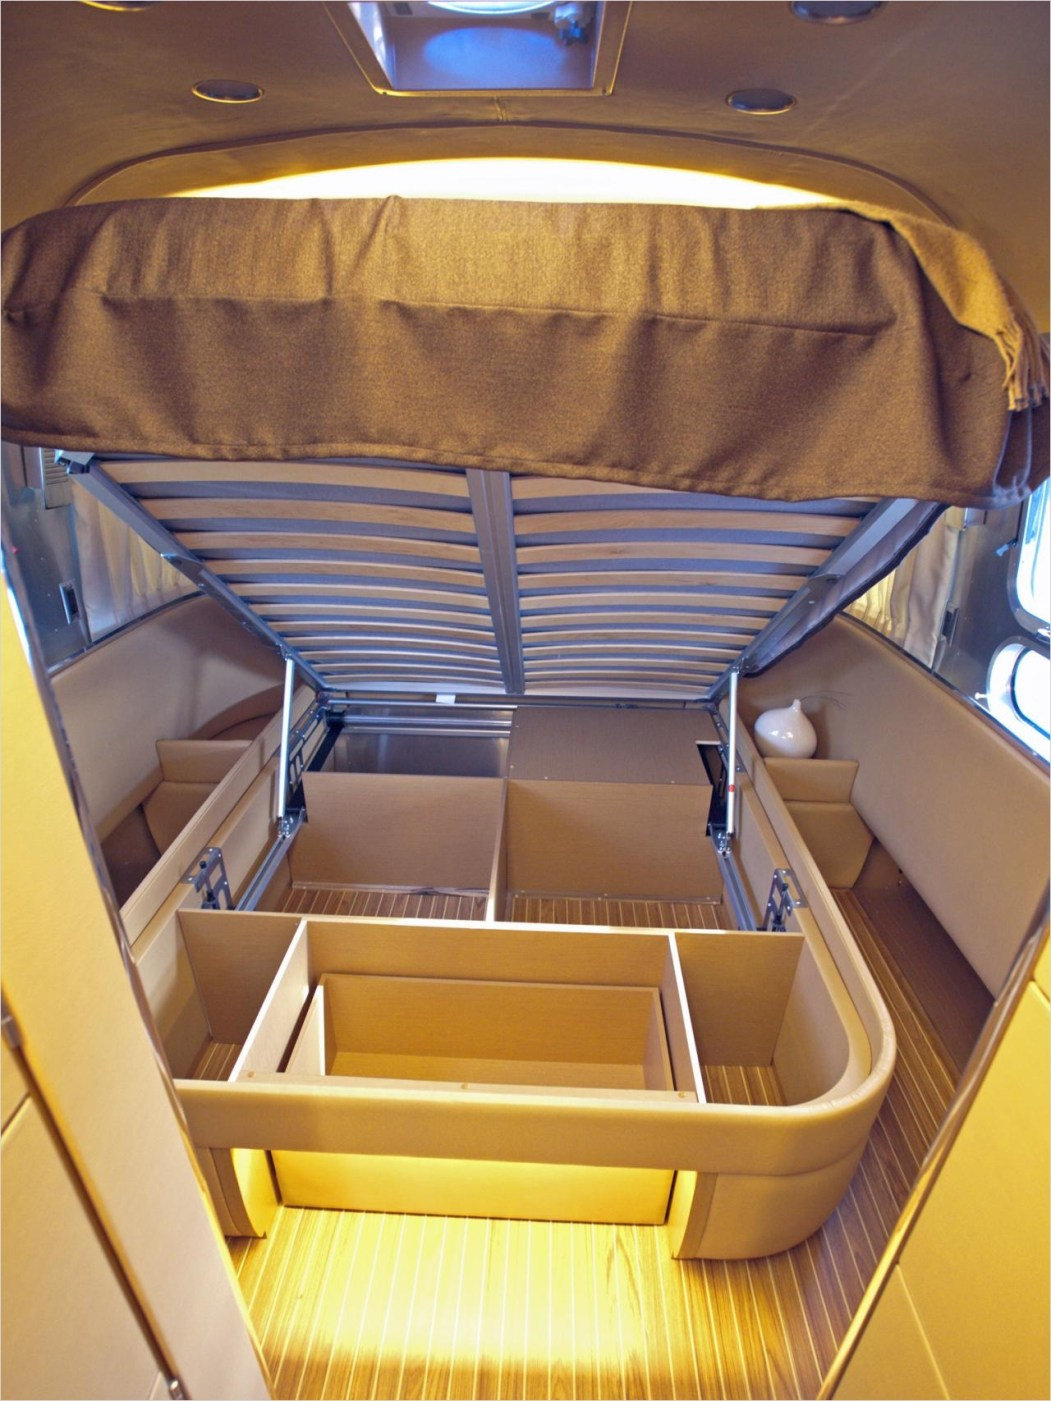 40 Diy Rv Camper Storage Ideas 66 Take the 2014 Rv tour Decorating and Design Ideas for Interior Rooms 3